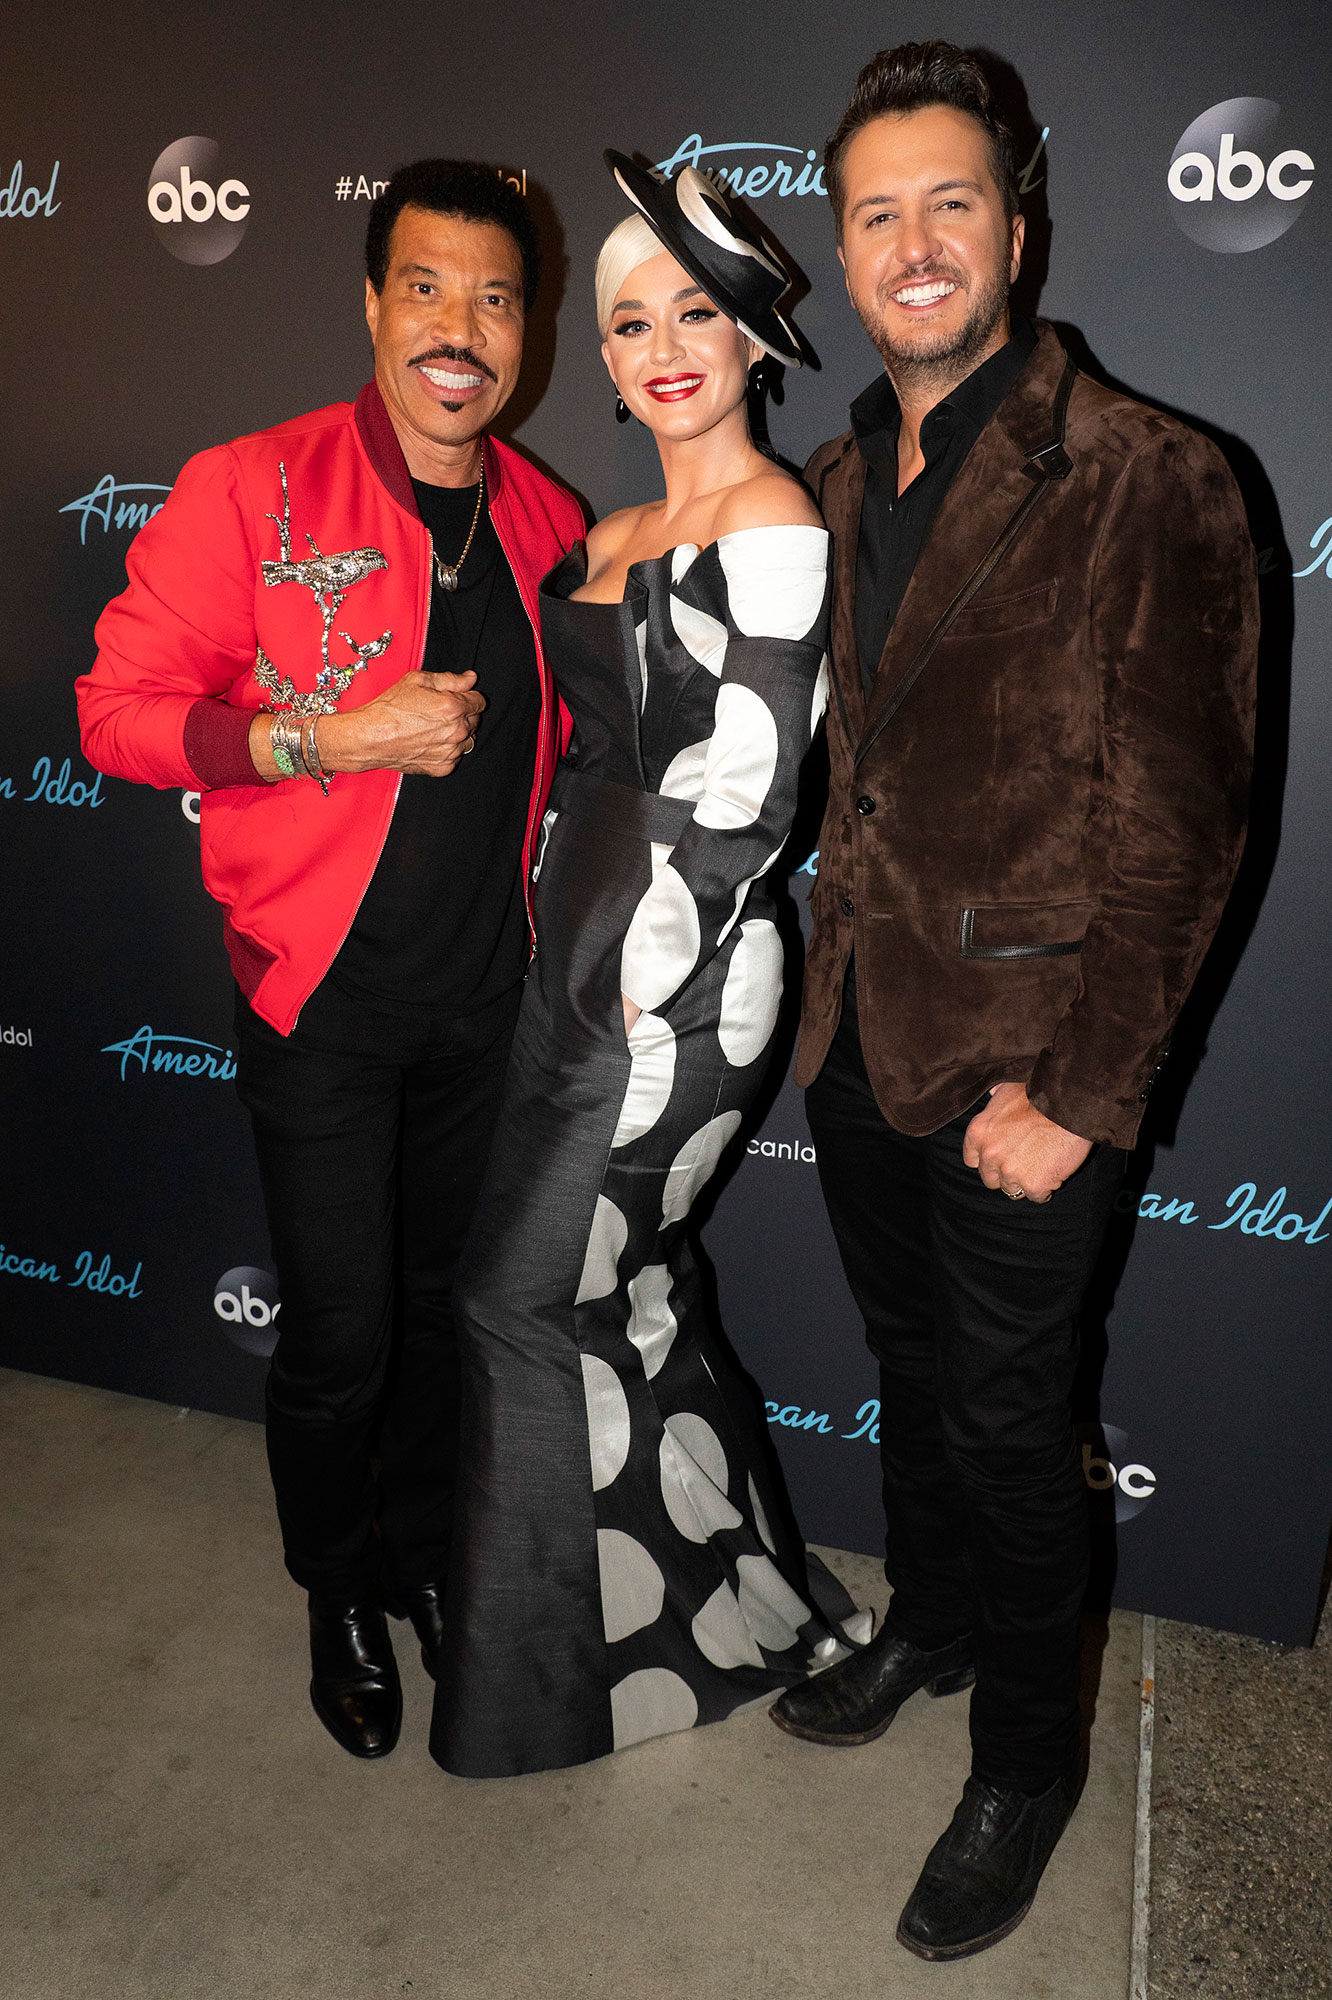 Lionel Richie, Katy Perry, and Luke Bryan Address Return for a Third Season - Lionel Richie, Katy Perry and Luke Bryan arrive at the season finale of 'American Idol' on May 19, 2019.